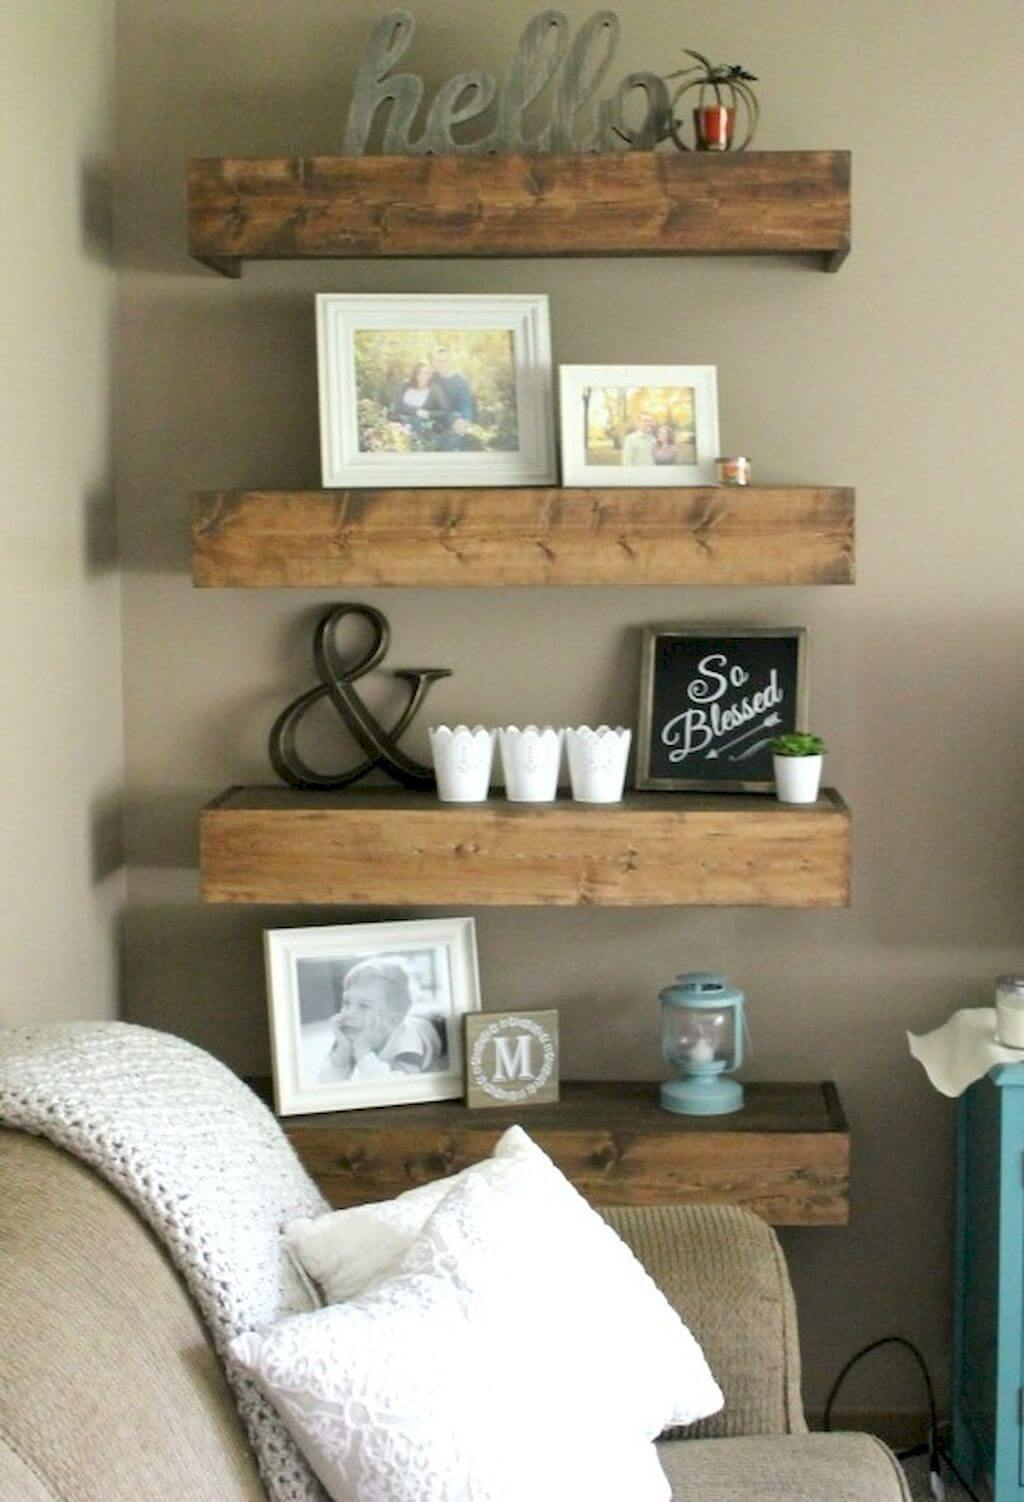 Farmhouse Bookshelf Decor Display